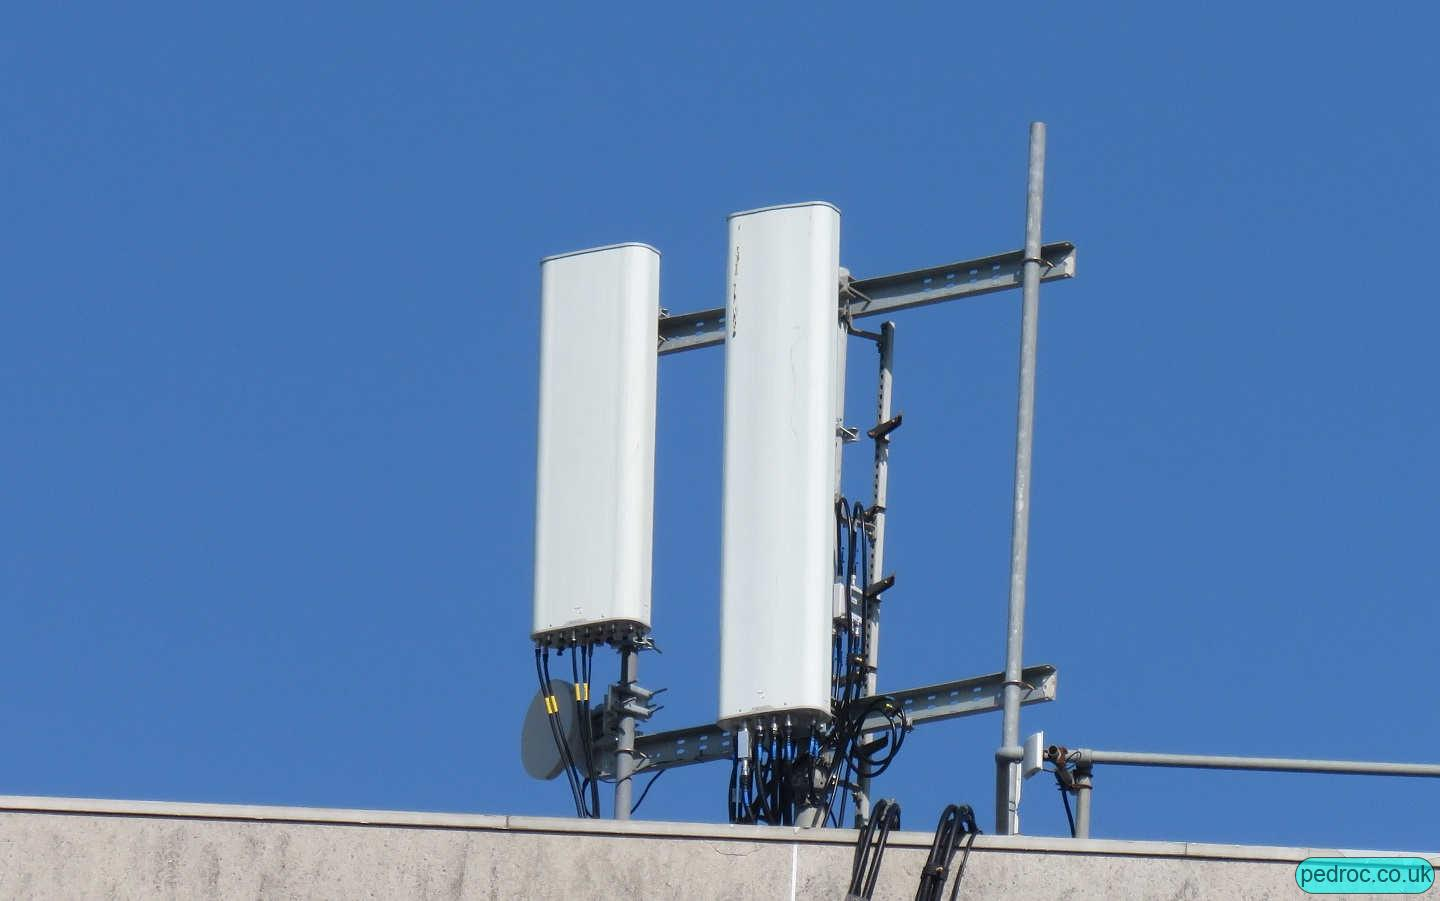 O2 Host antennas: Usual array of Huawei AQU and ATD as seen on Beacon 2 sites.